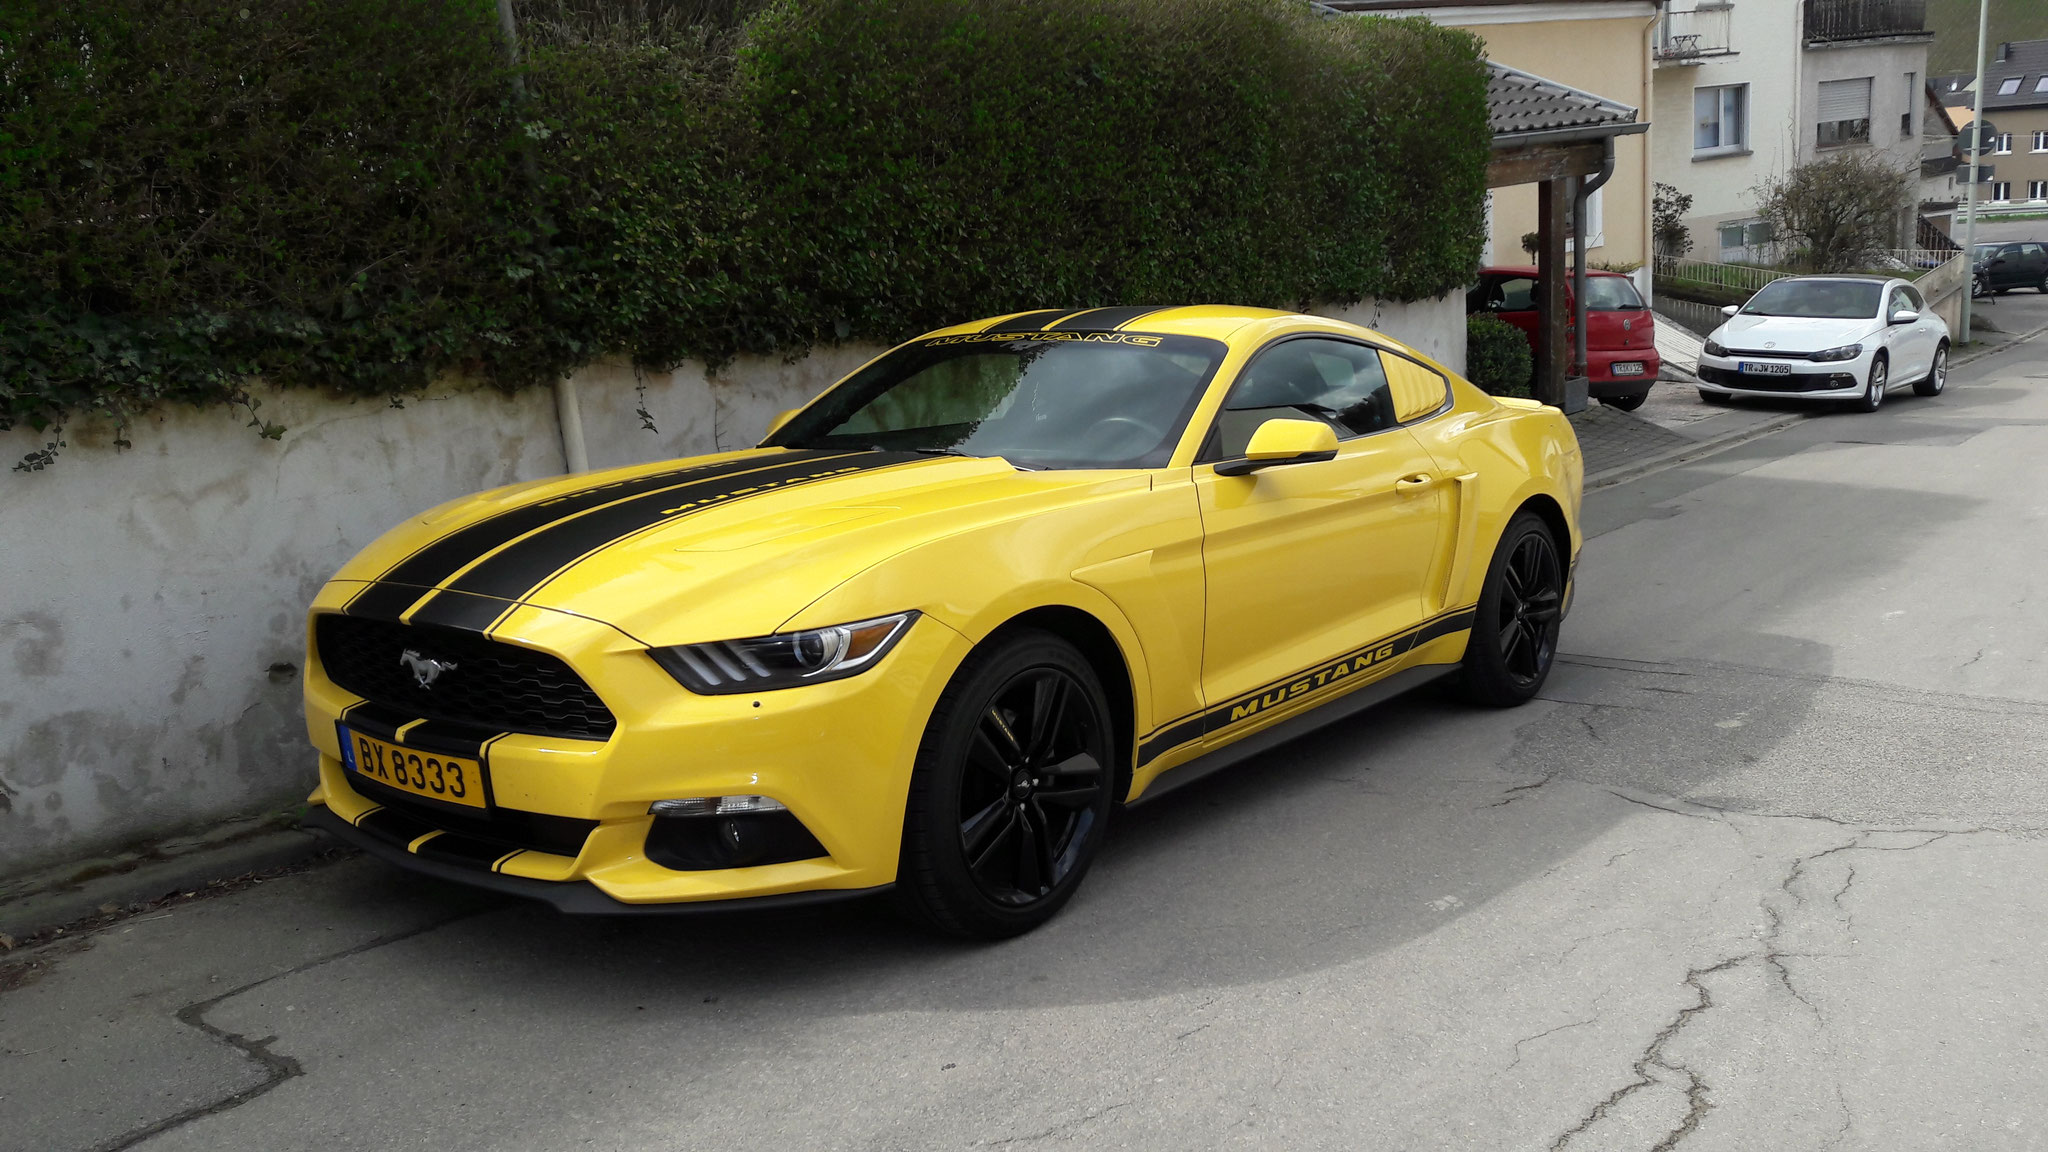 Ford Mustang GT - BX-8333 (LUX)